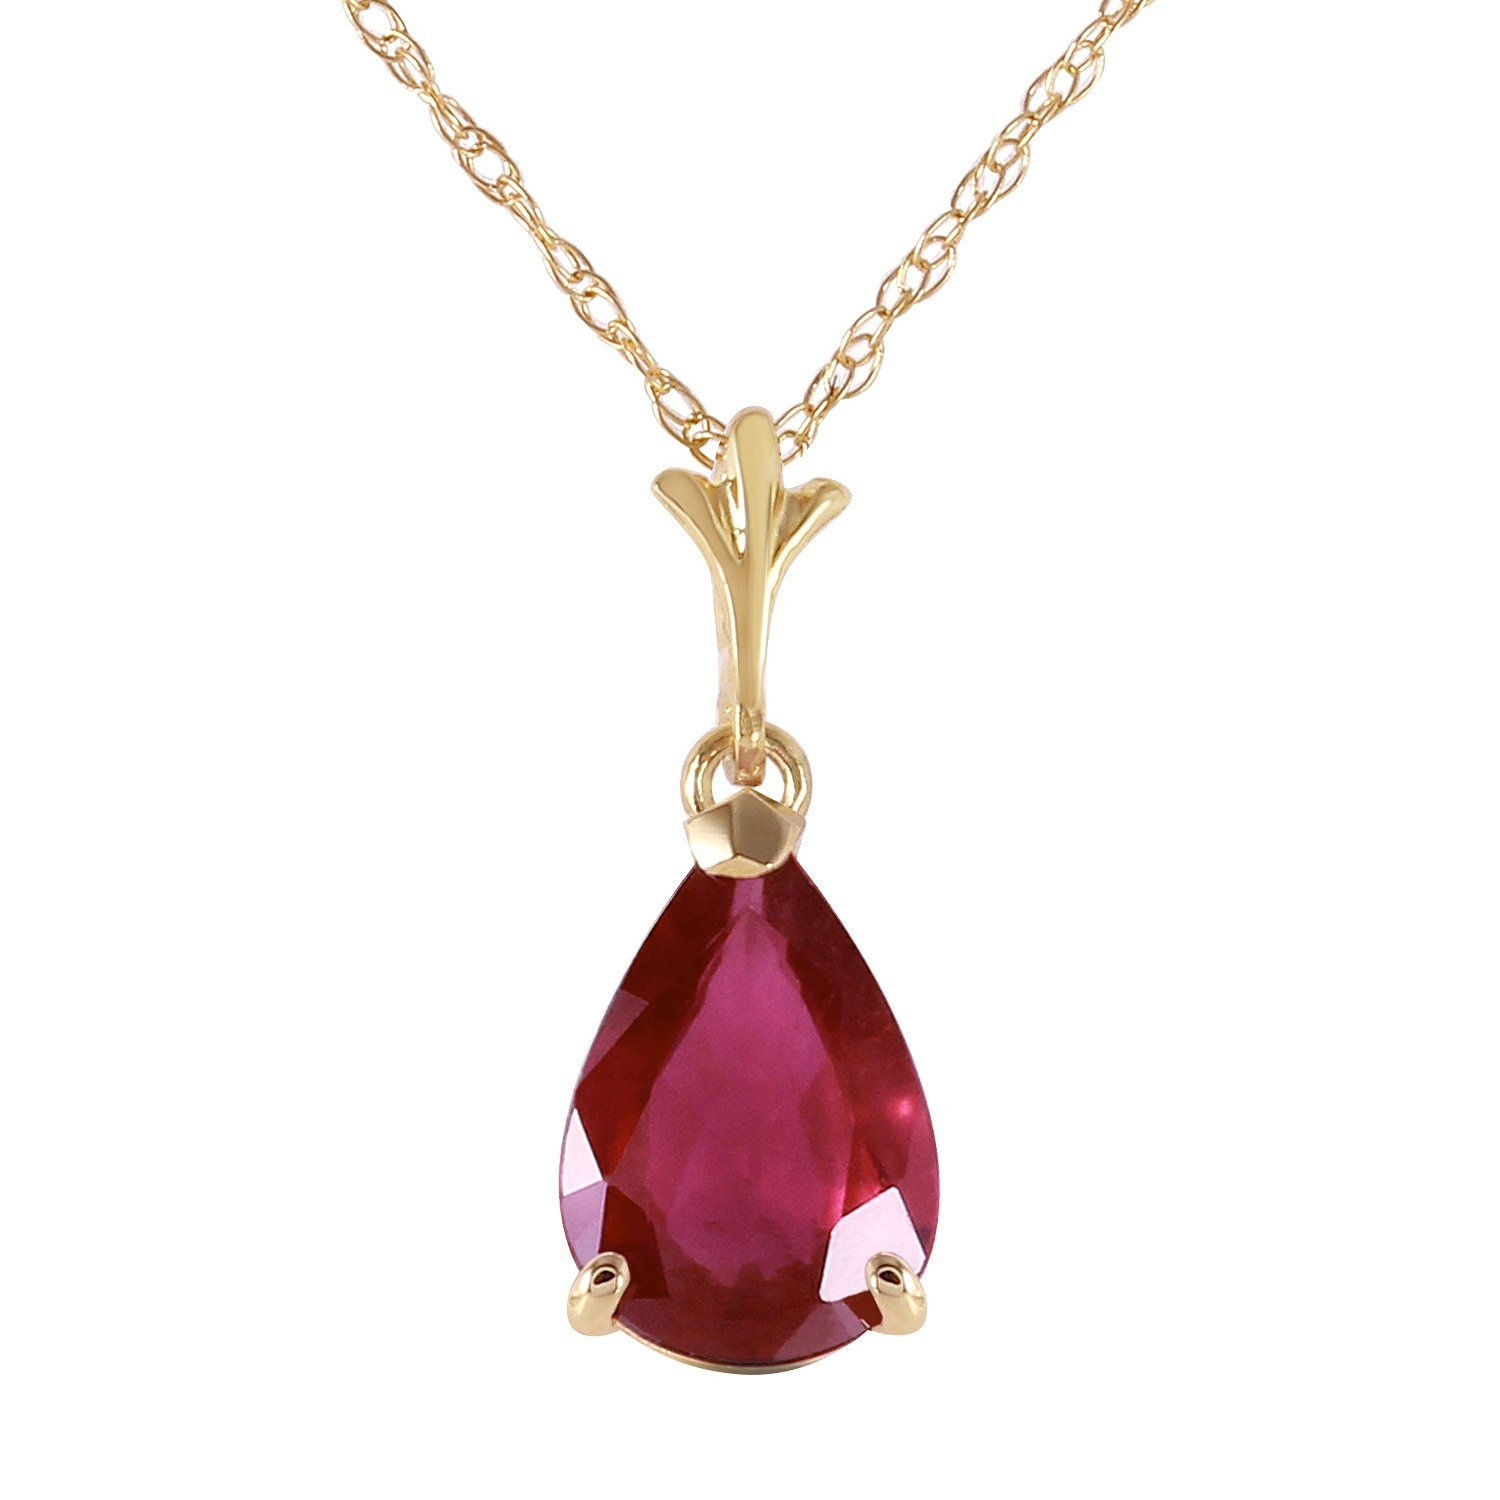 Galaxy Gold 1.75 Carat 14k 18'' Solid Gold Natural Pear-shaped Ruby Drop Pendant Necklace